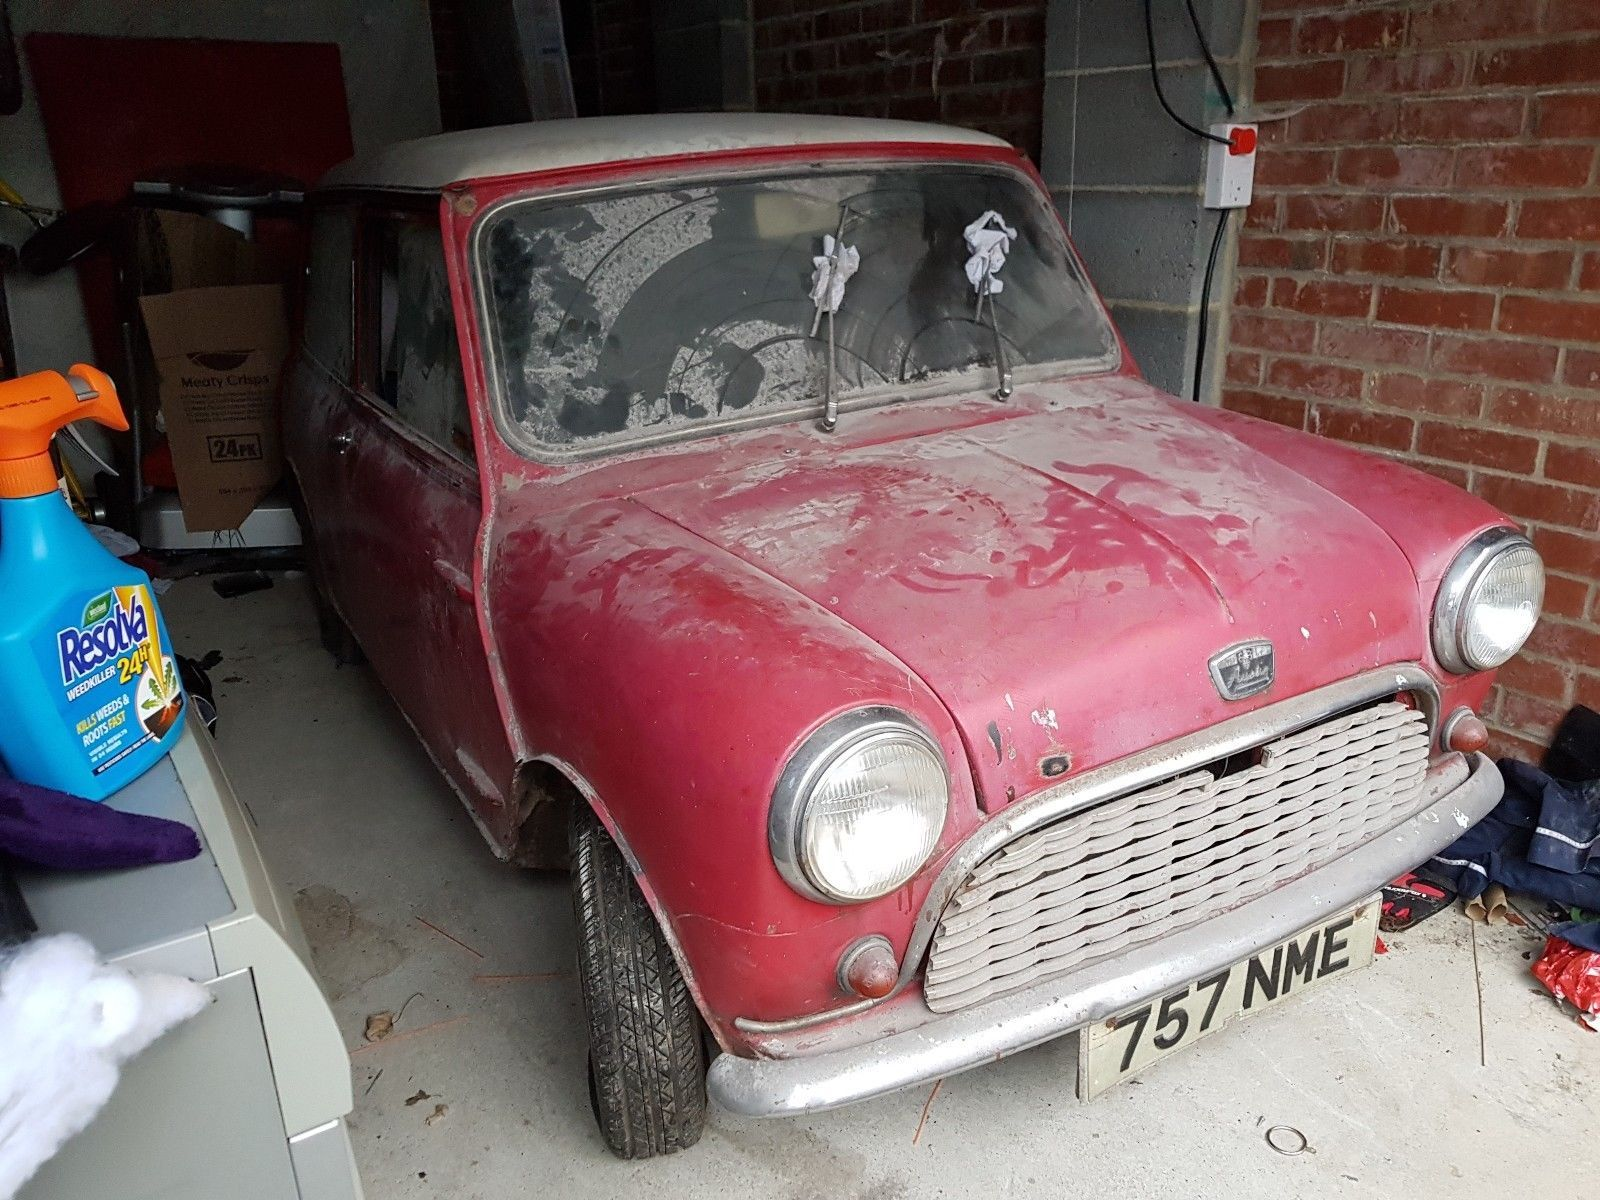 1961 Austin 7 Mini Barn Find Restoration Project Barn Find Restoration Barn Finds Mini